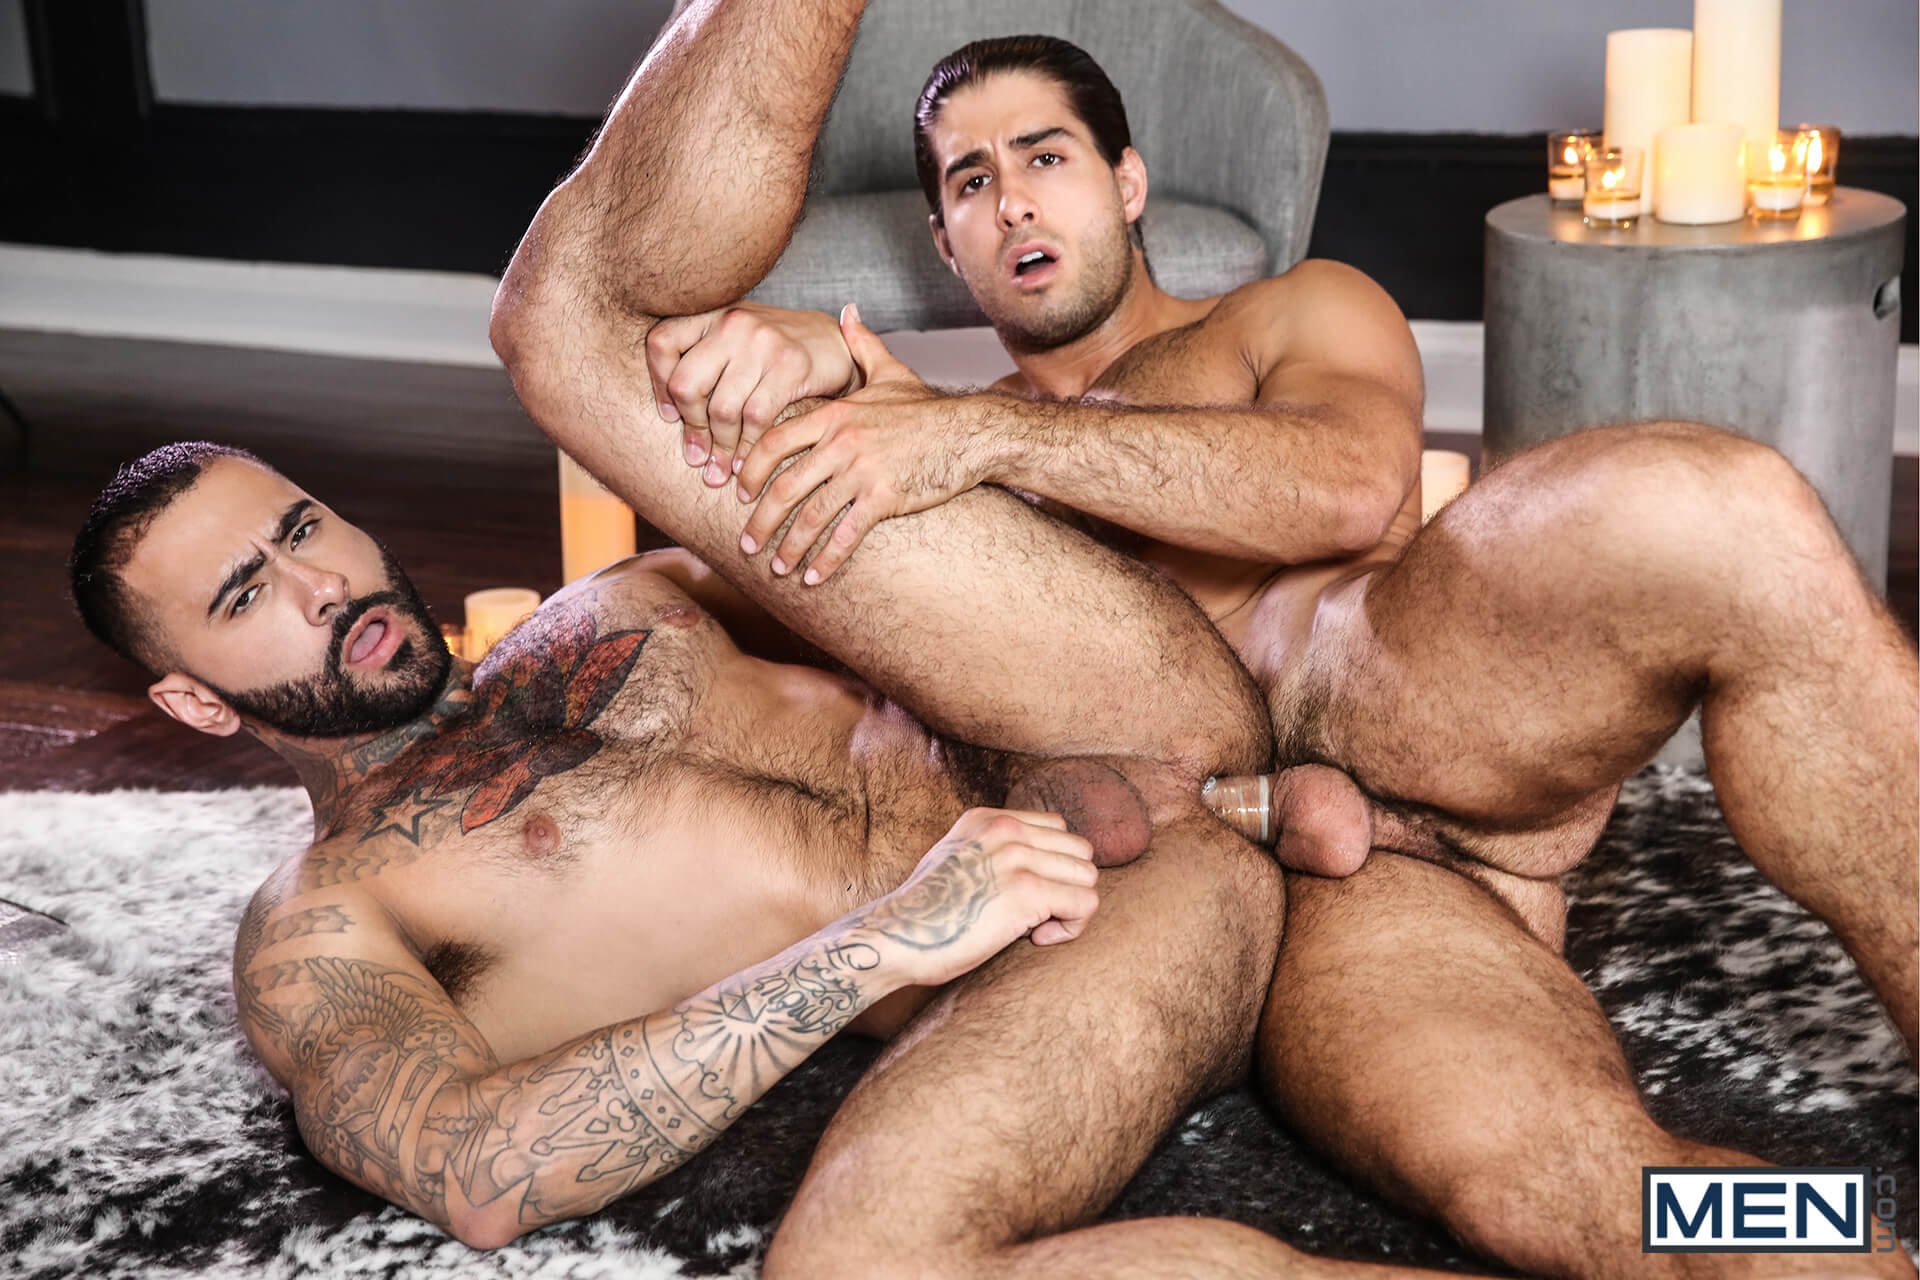 MEN.COM » Gods Of Men » Te Amo » Diego Sans » Rikk York